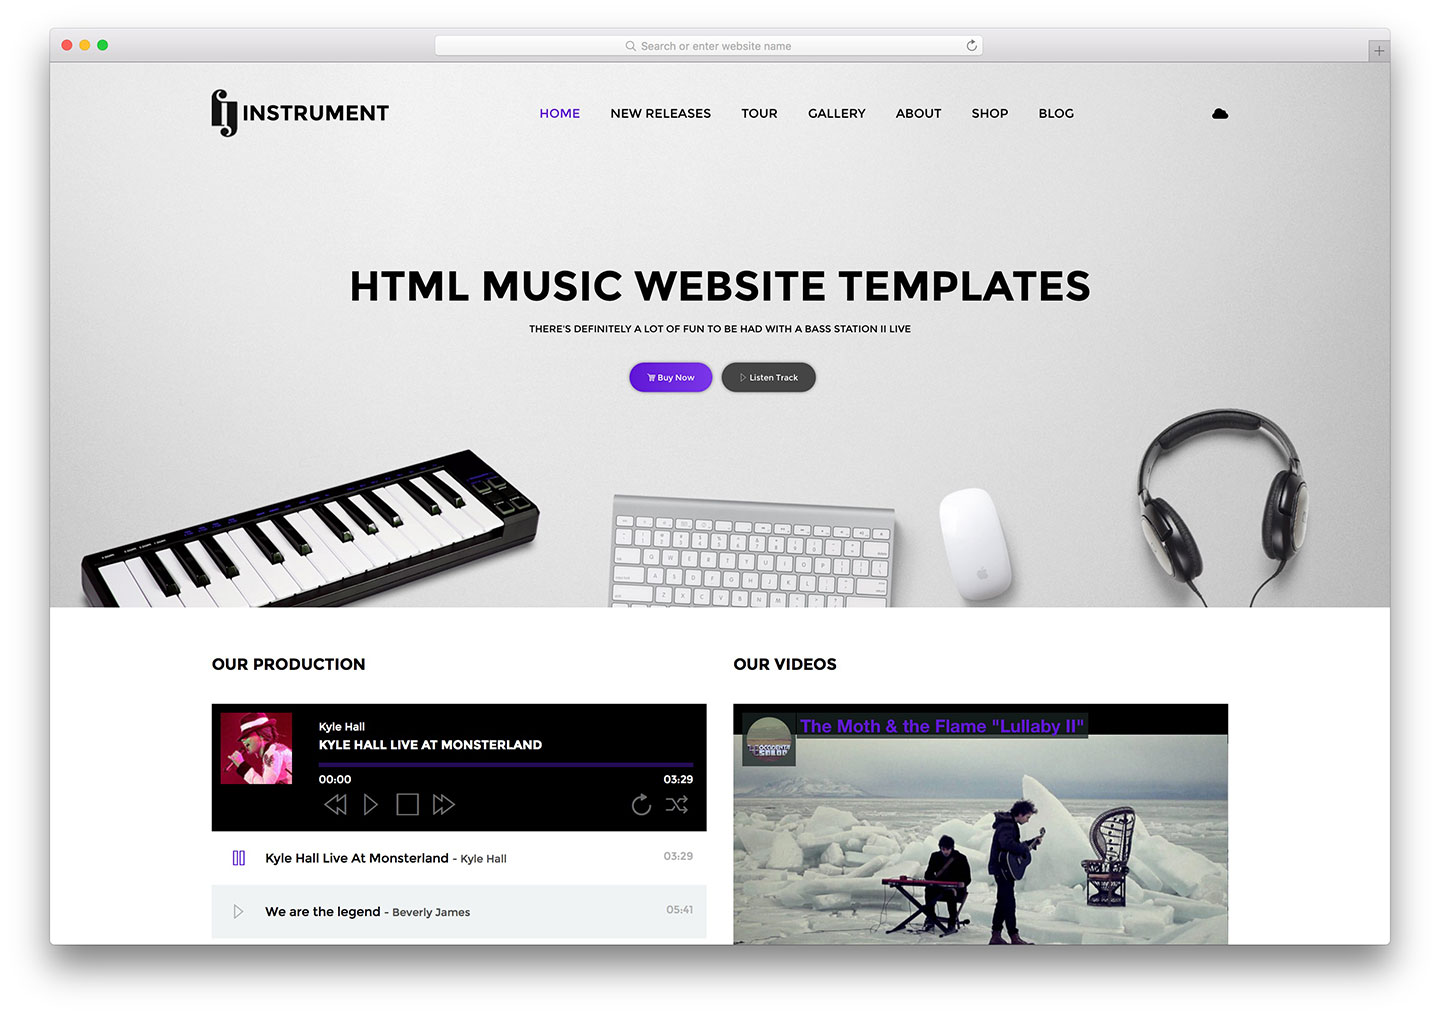 18 Best Mobile Friendly HTML5 Music Website Templates For Musicians, Bands, Night Clubs And Artists 2018